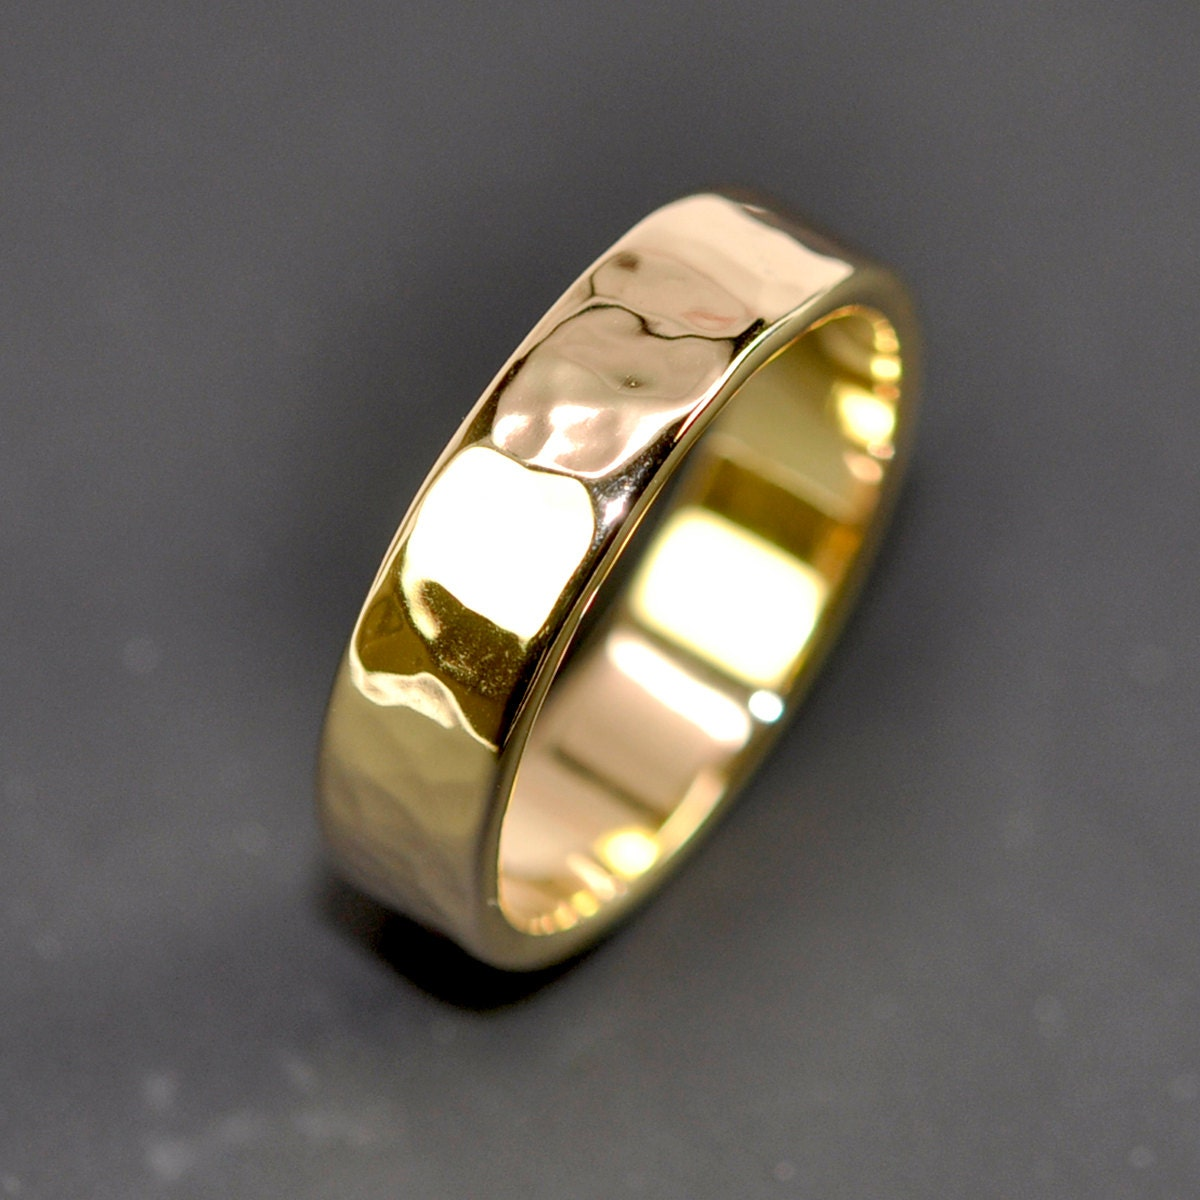 matte finishing pin band meant with handmade a handcrafted gold bands that these are his titanium rings on unisex for customized set her you couple and engraving it in is wedding